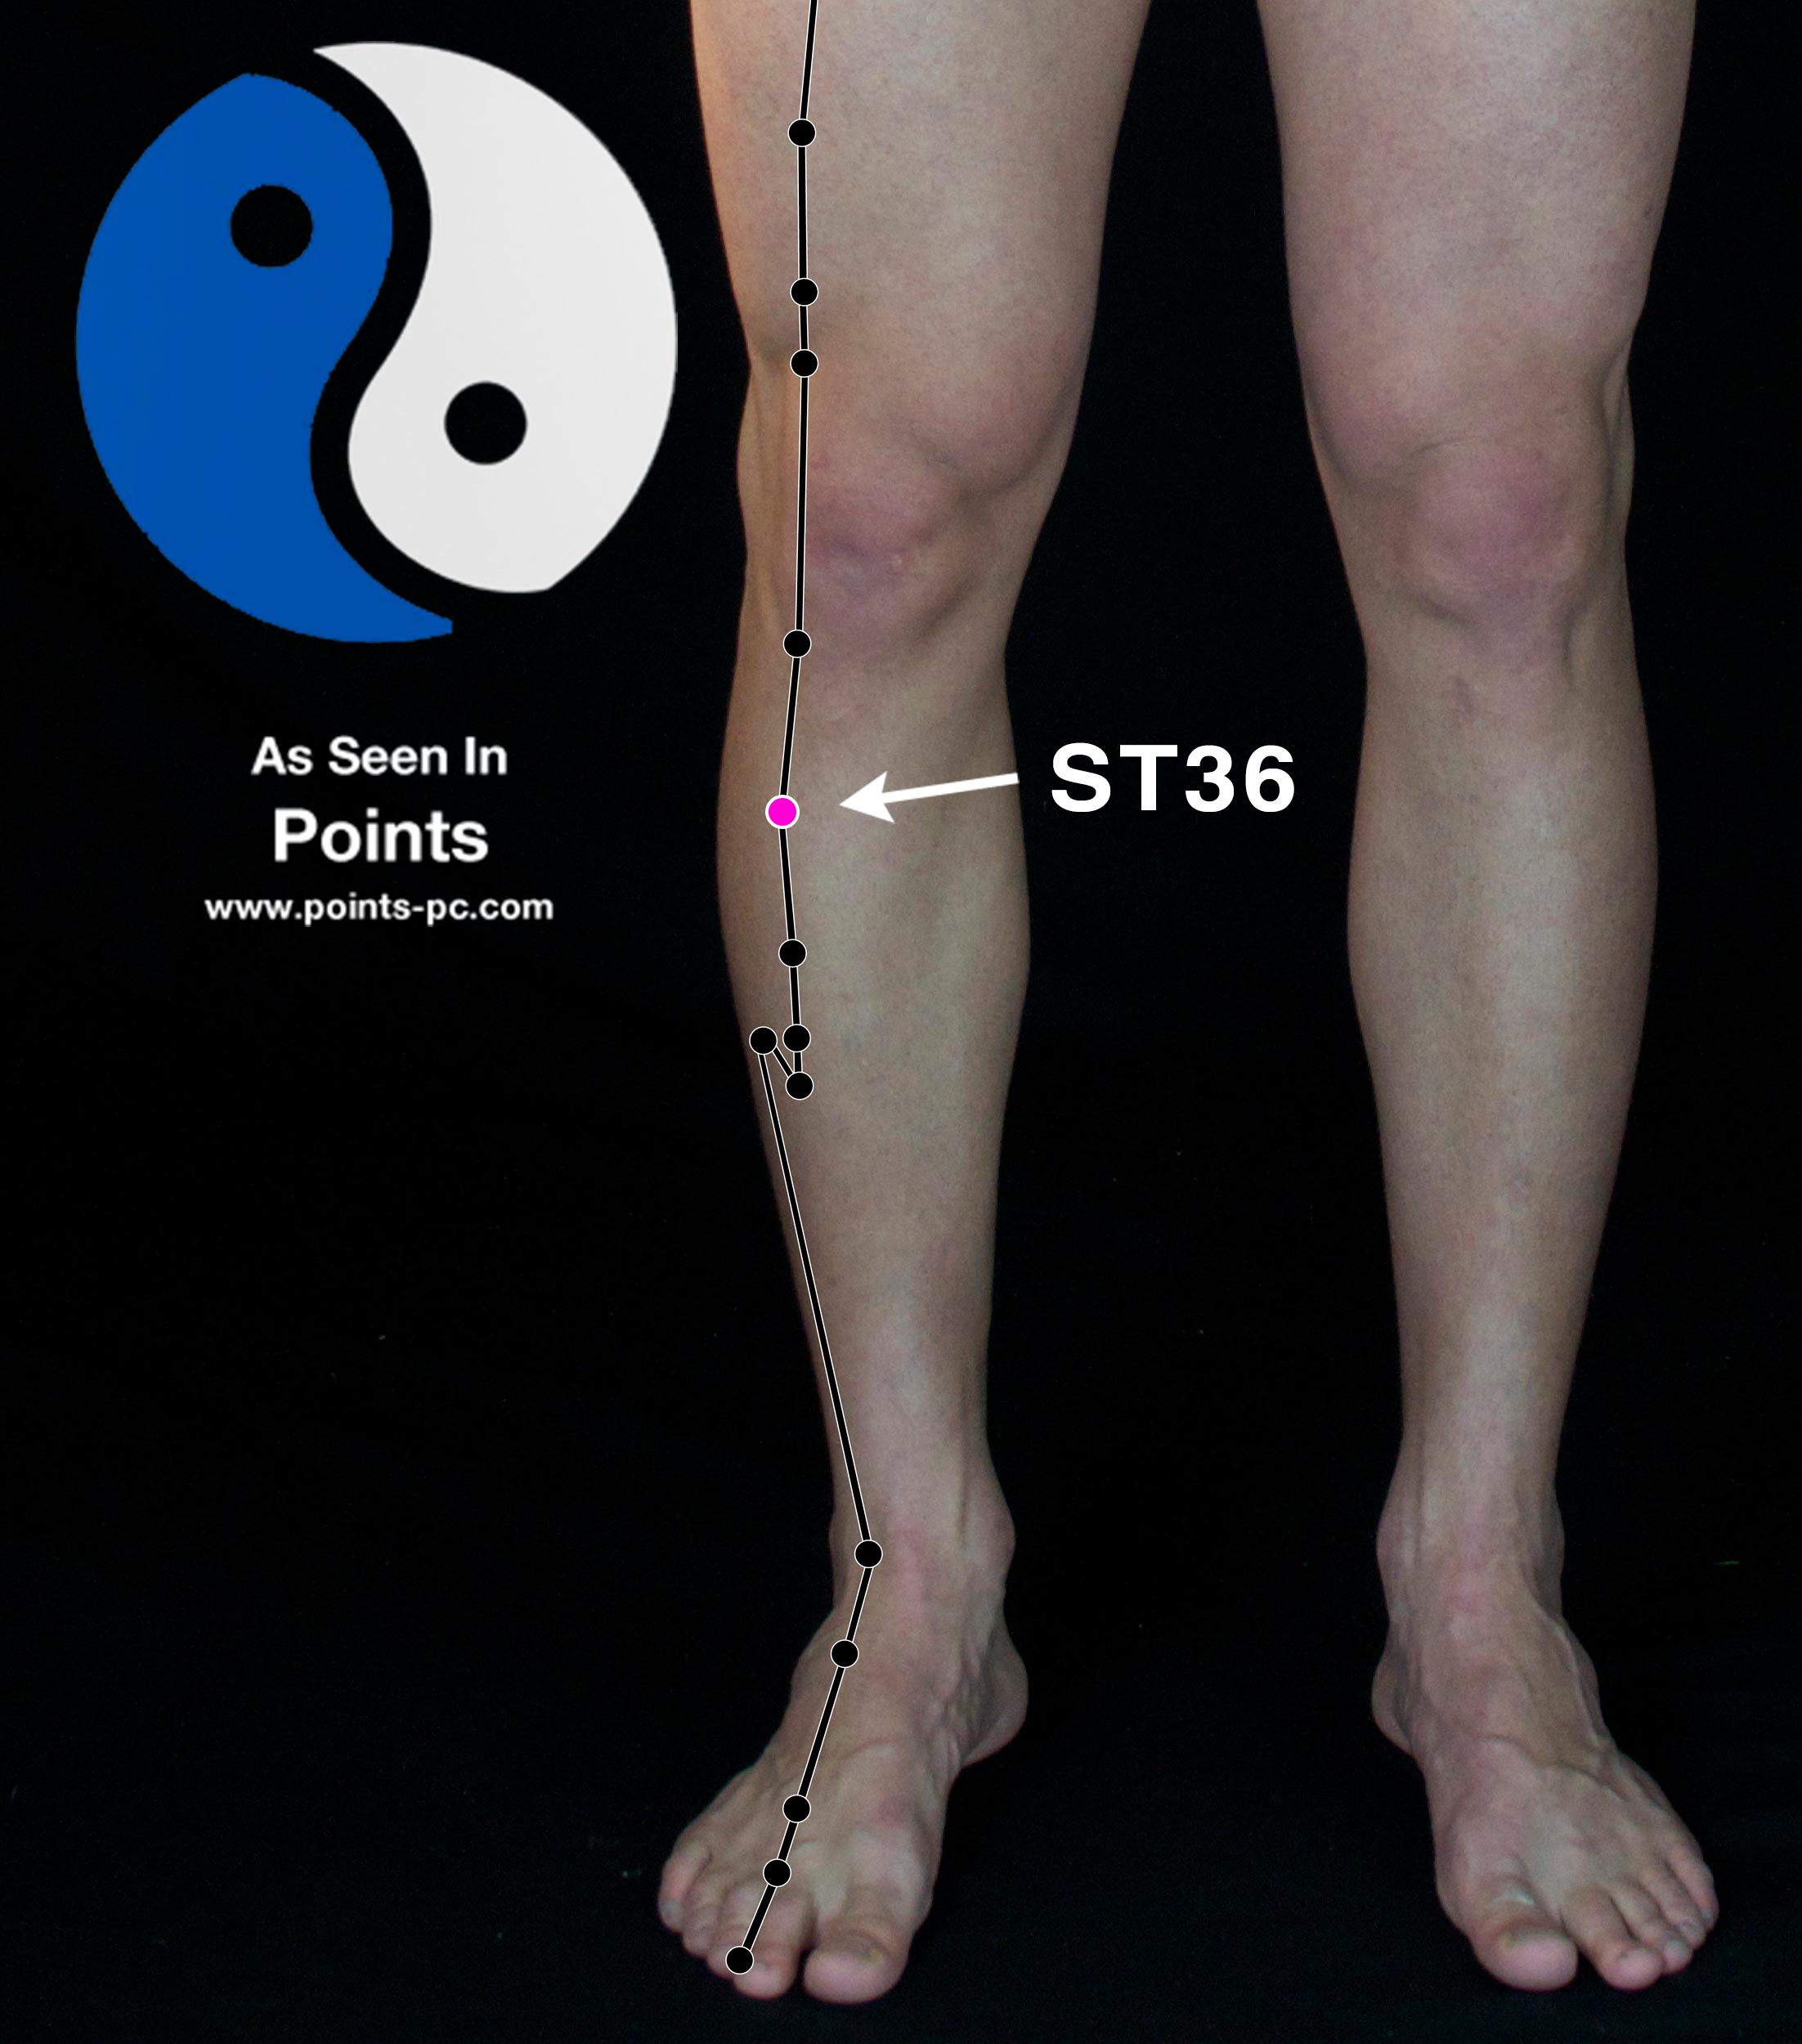 Acupuncture Point: Stomach 36